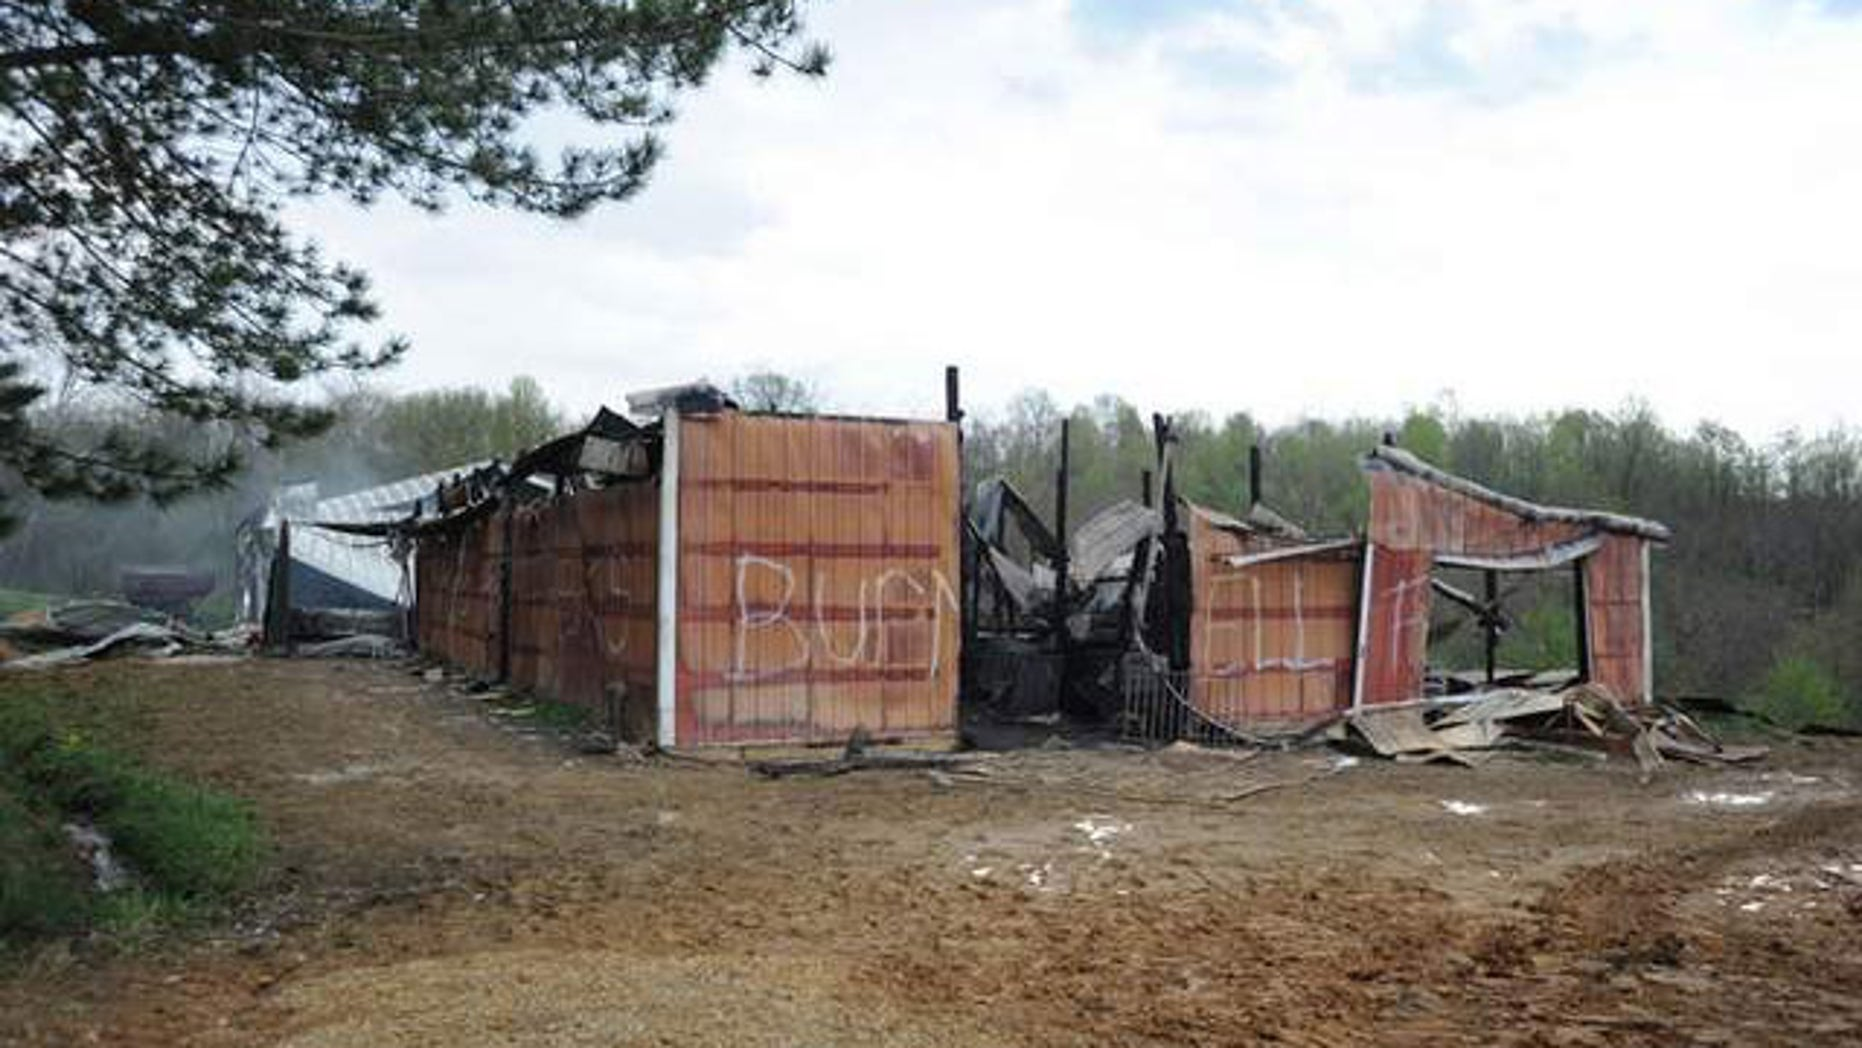 Eight horses, including a newborn and one ready to give birth, were killed in the barn fire in McConnelsville (Chris Crook/Times Recorder).